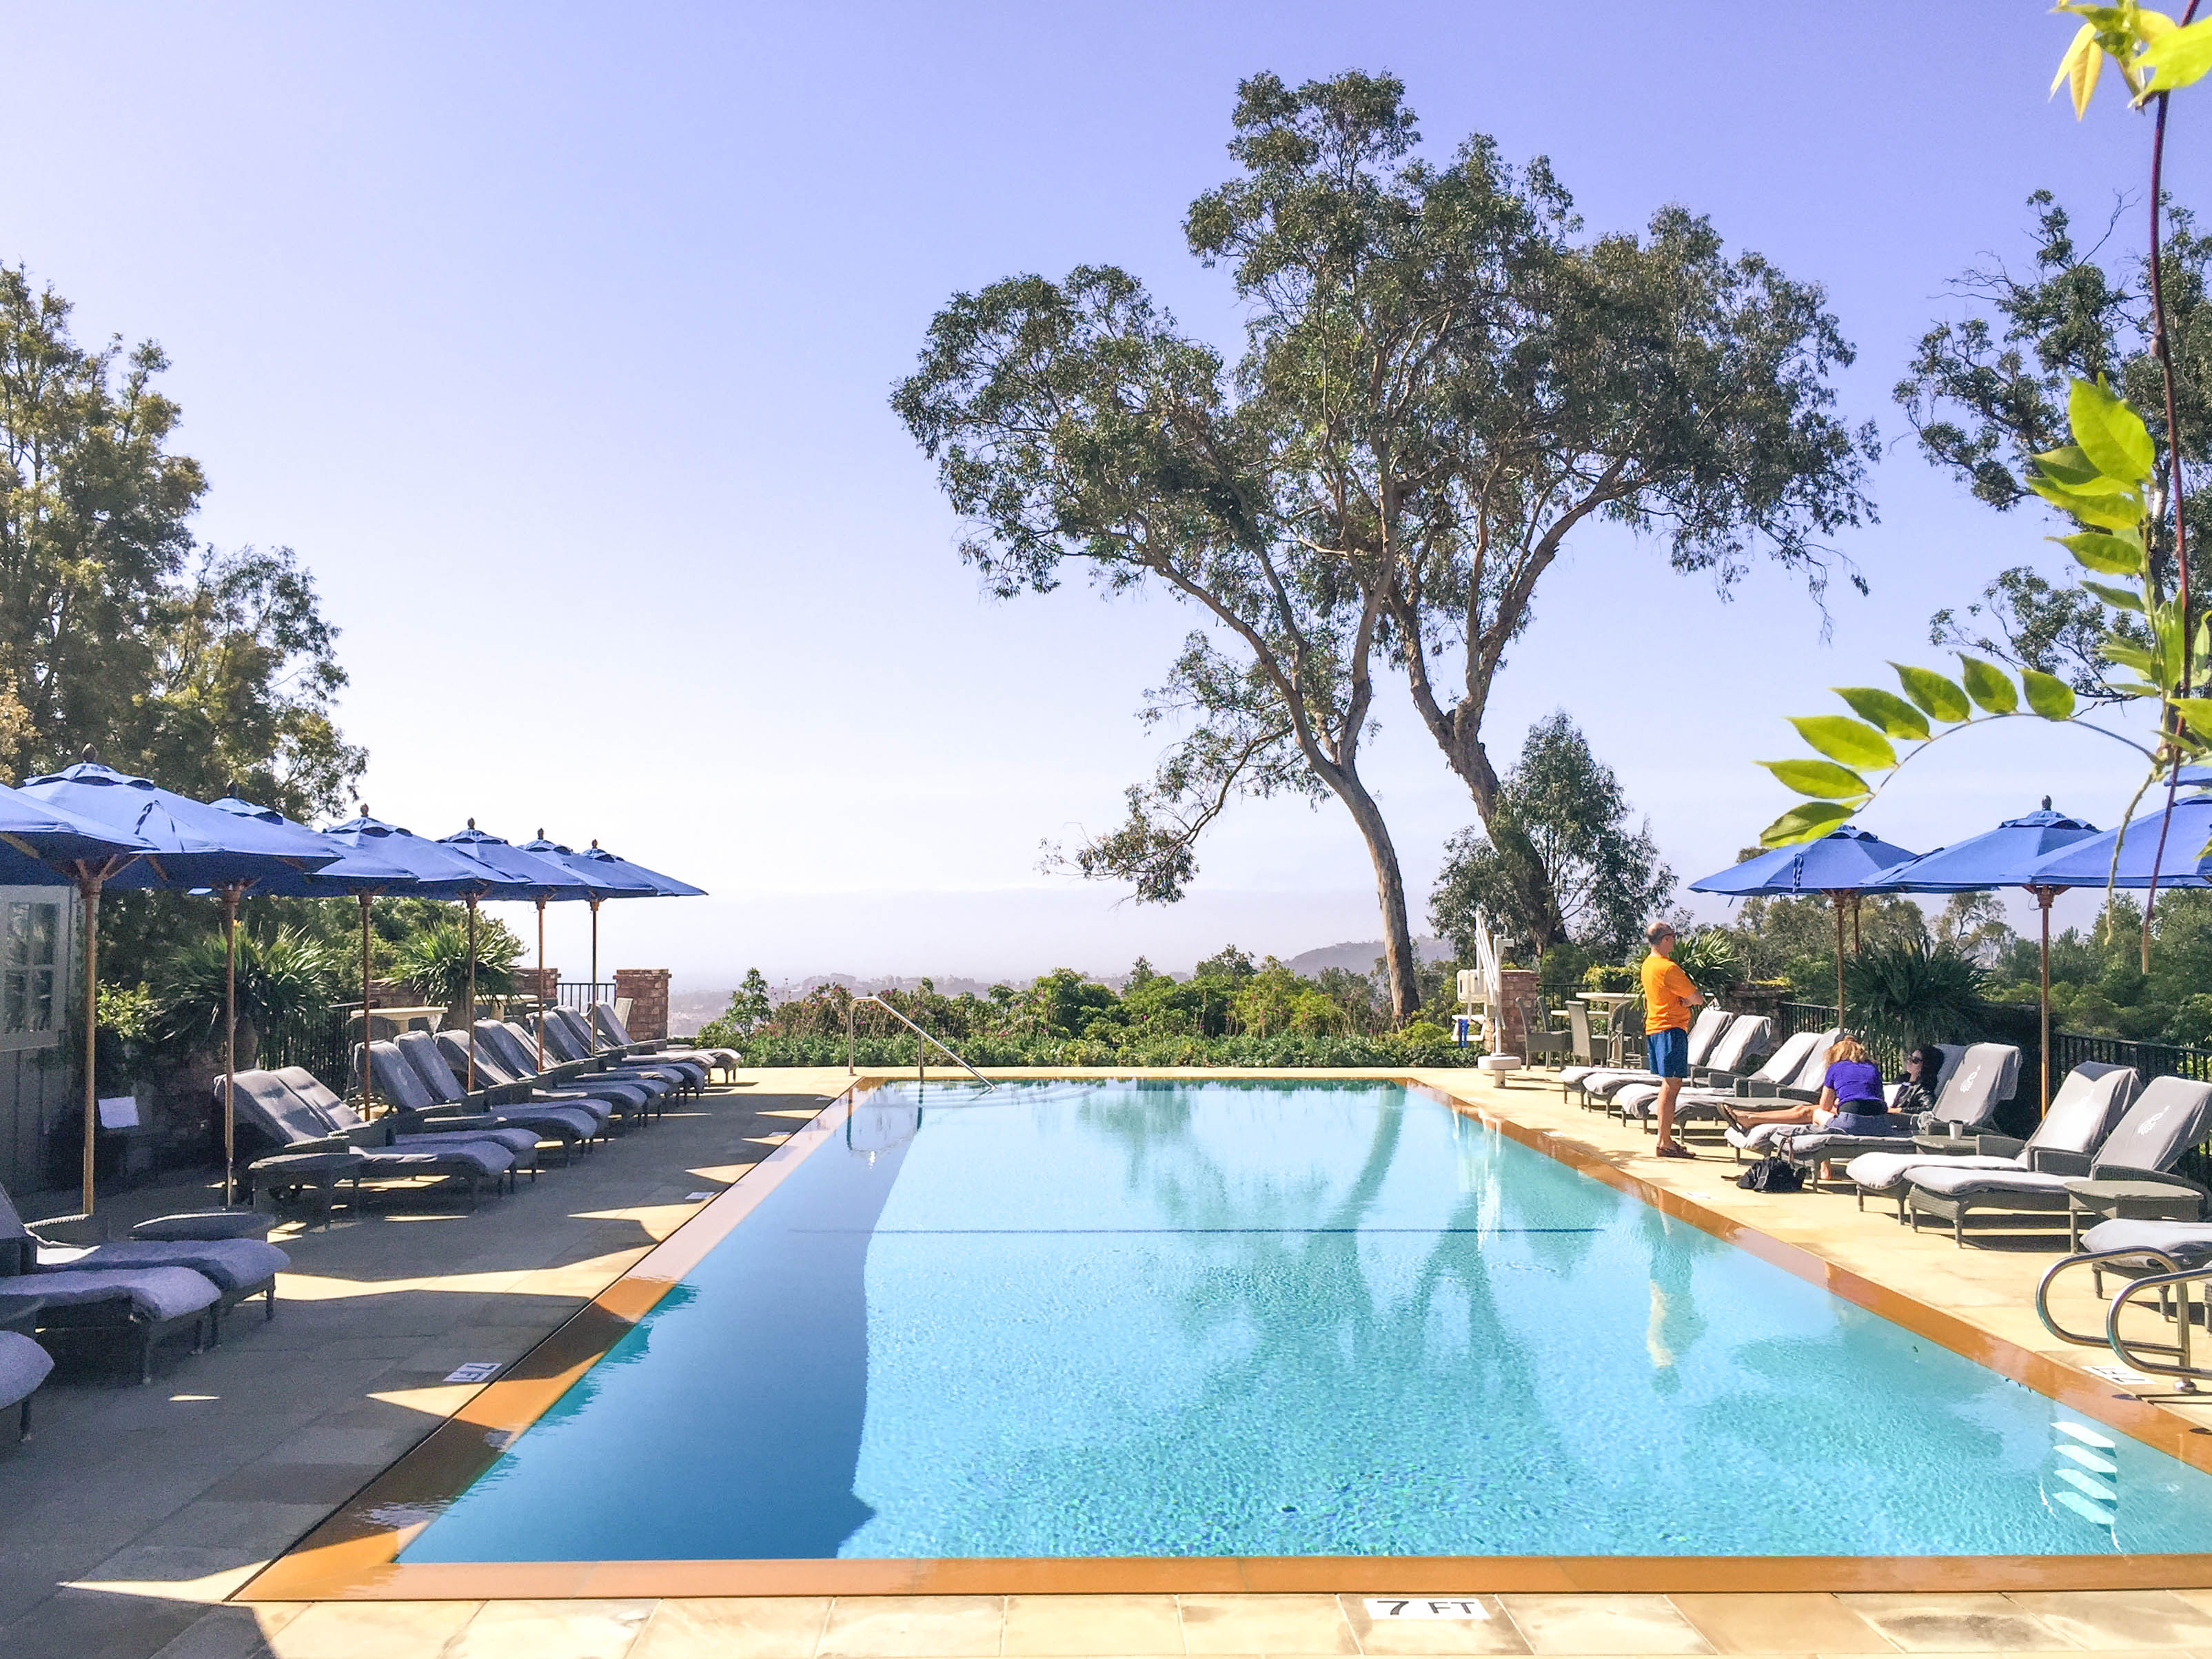 Where to stay in Santa Barbara: Belmond El Encanto